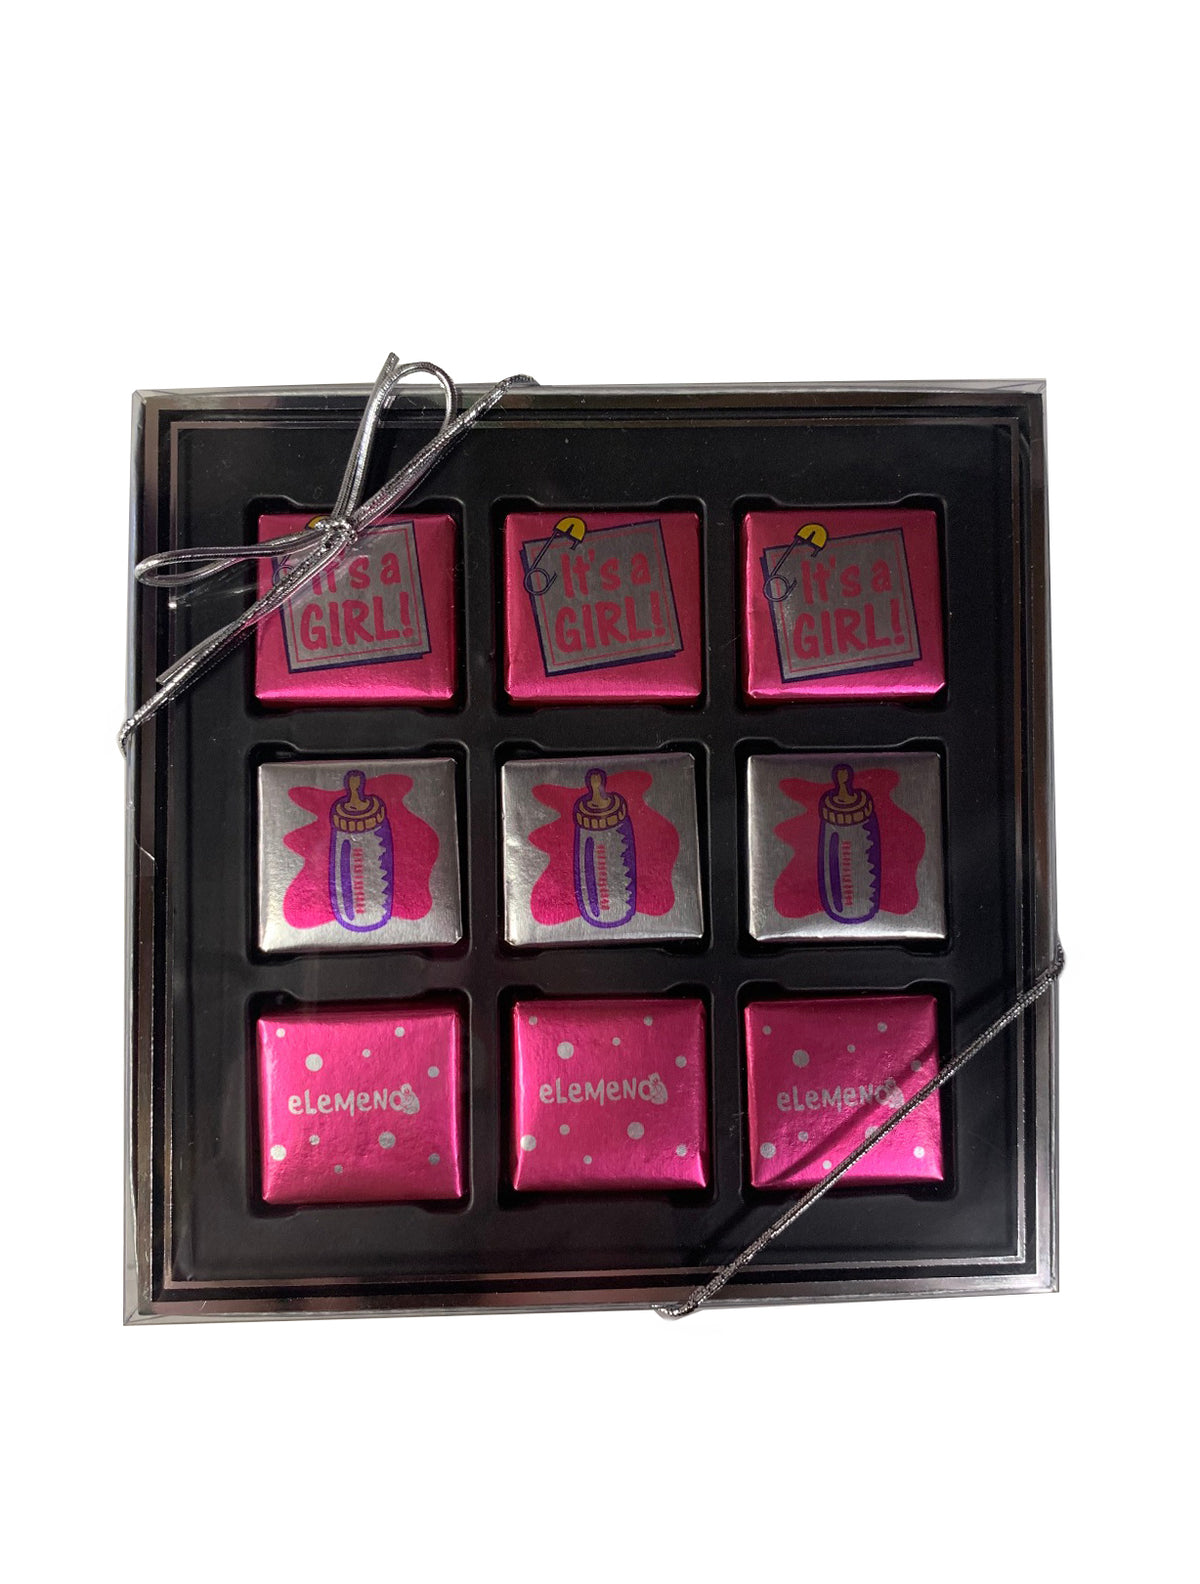 Astor Chocolate ITS A GIRL Gift Box